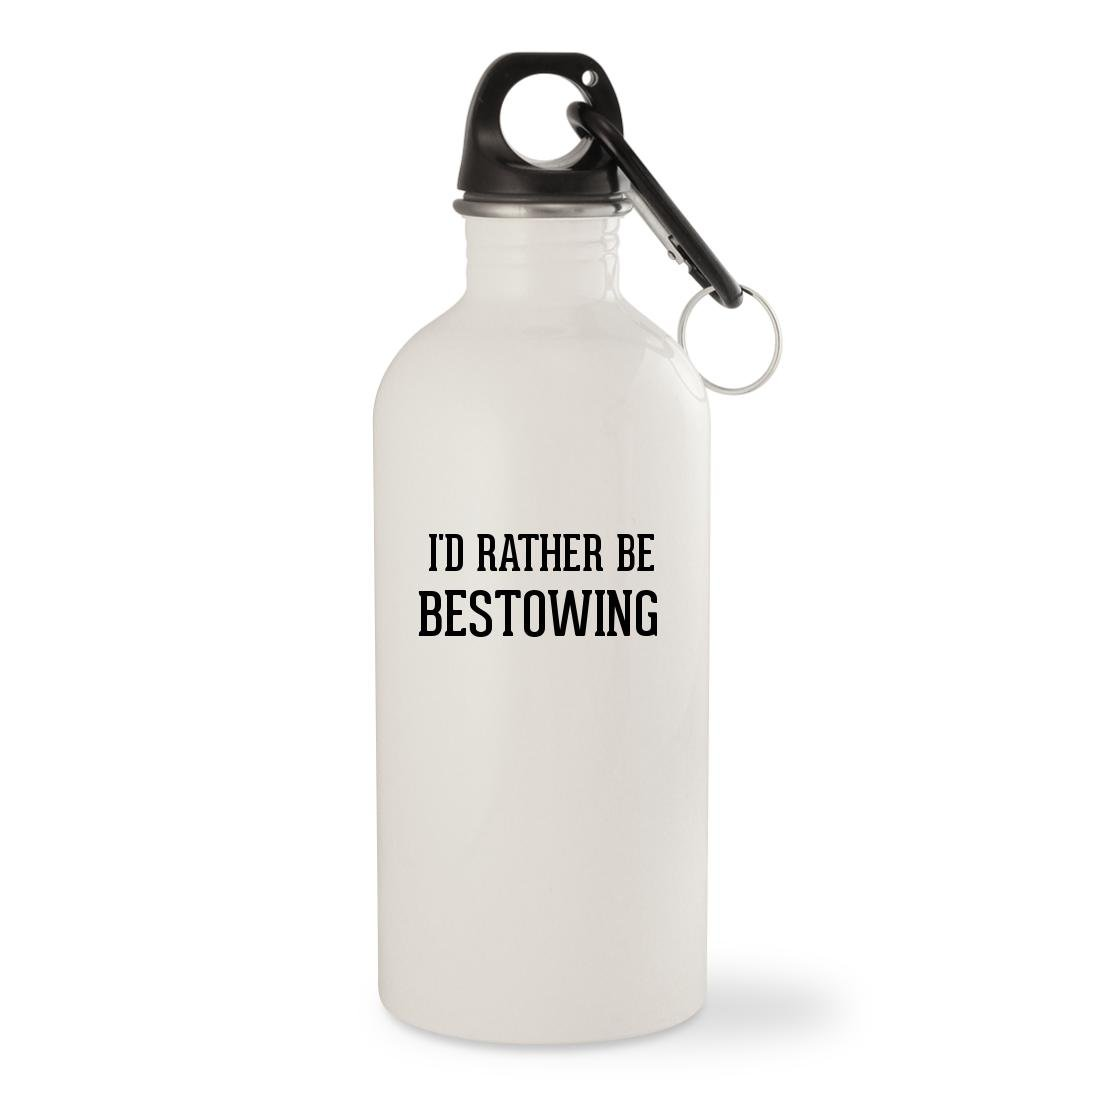 I'd Rather Be BESTOWING - White 20oz Stainless Steel Water Bottle with Carabiner